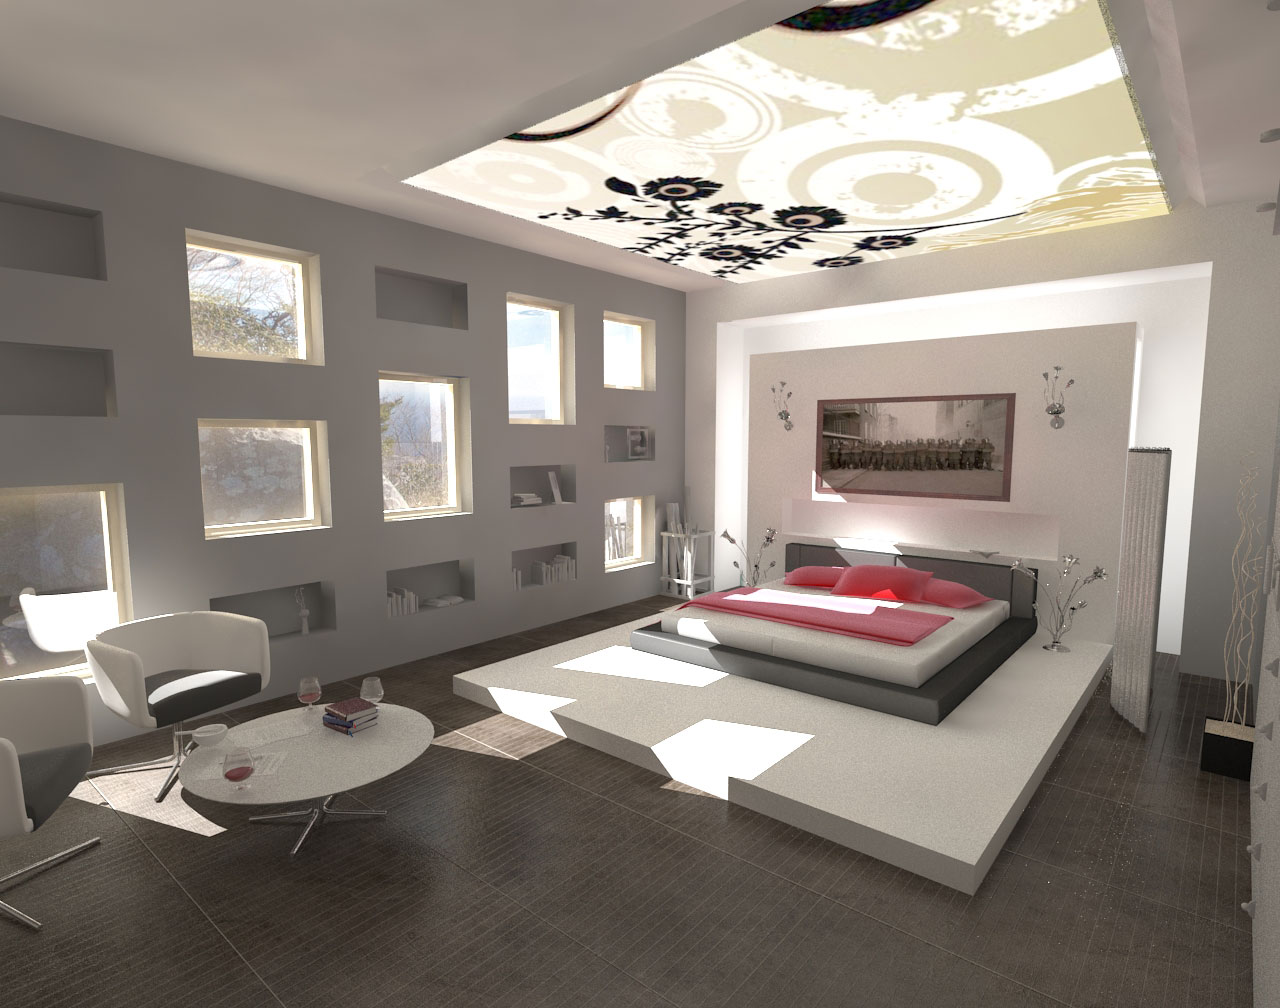 Decorations minimalist design modern bedroom interior for New bedroom designs pictures